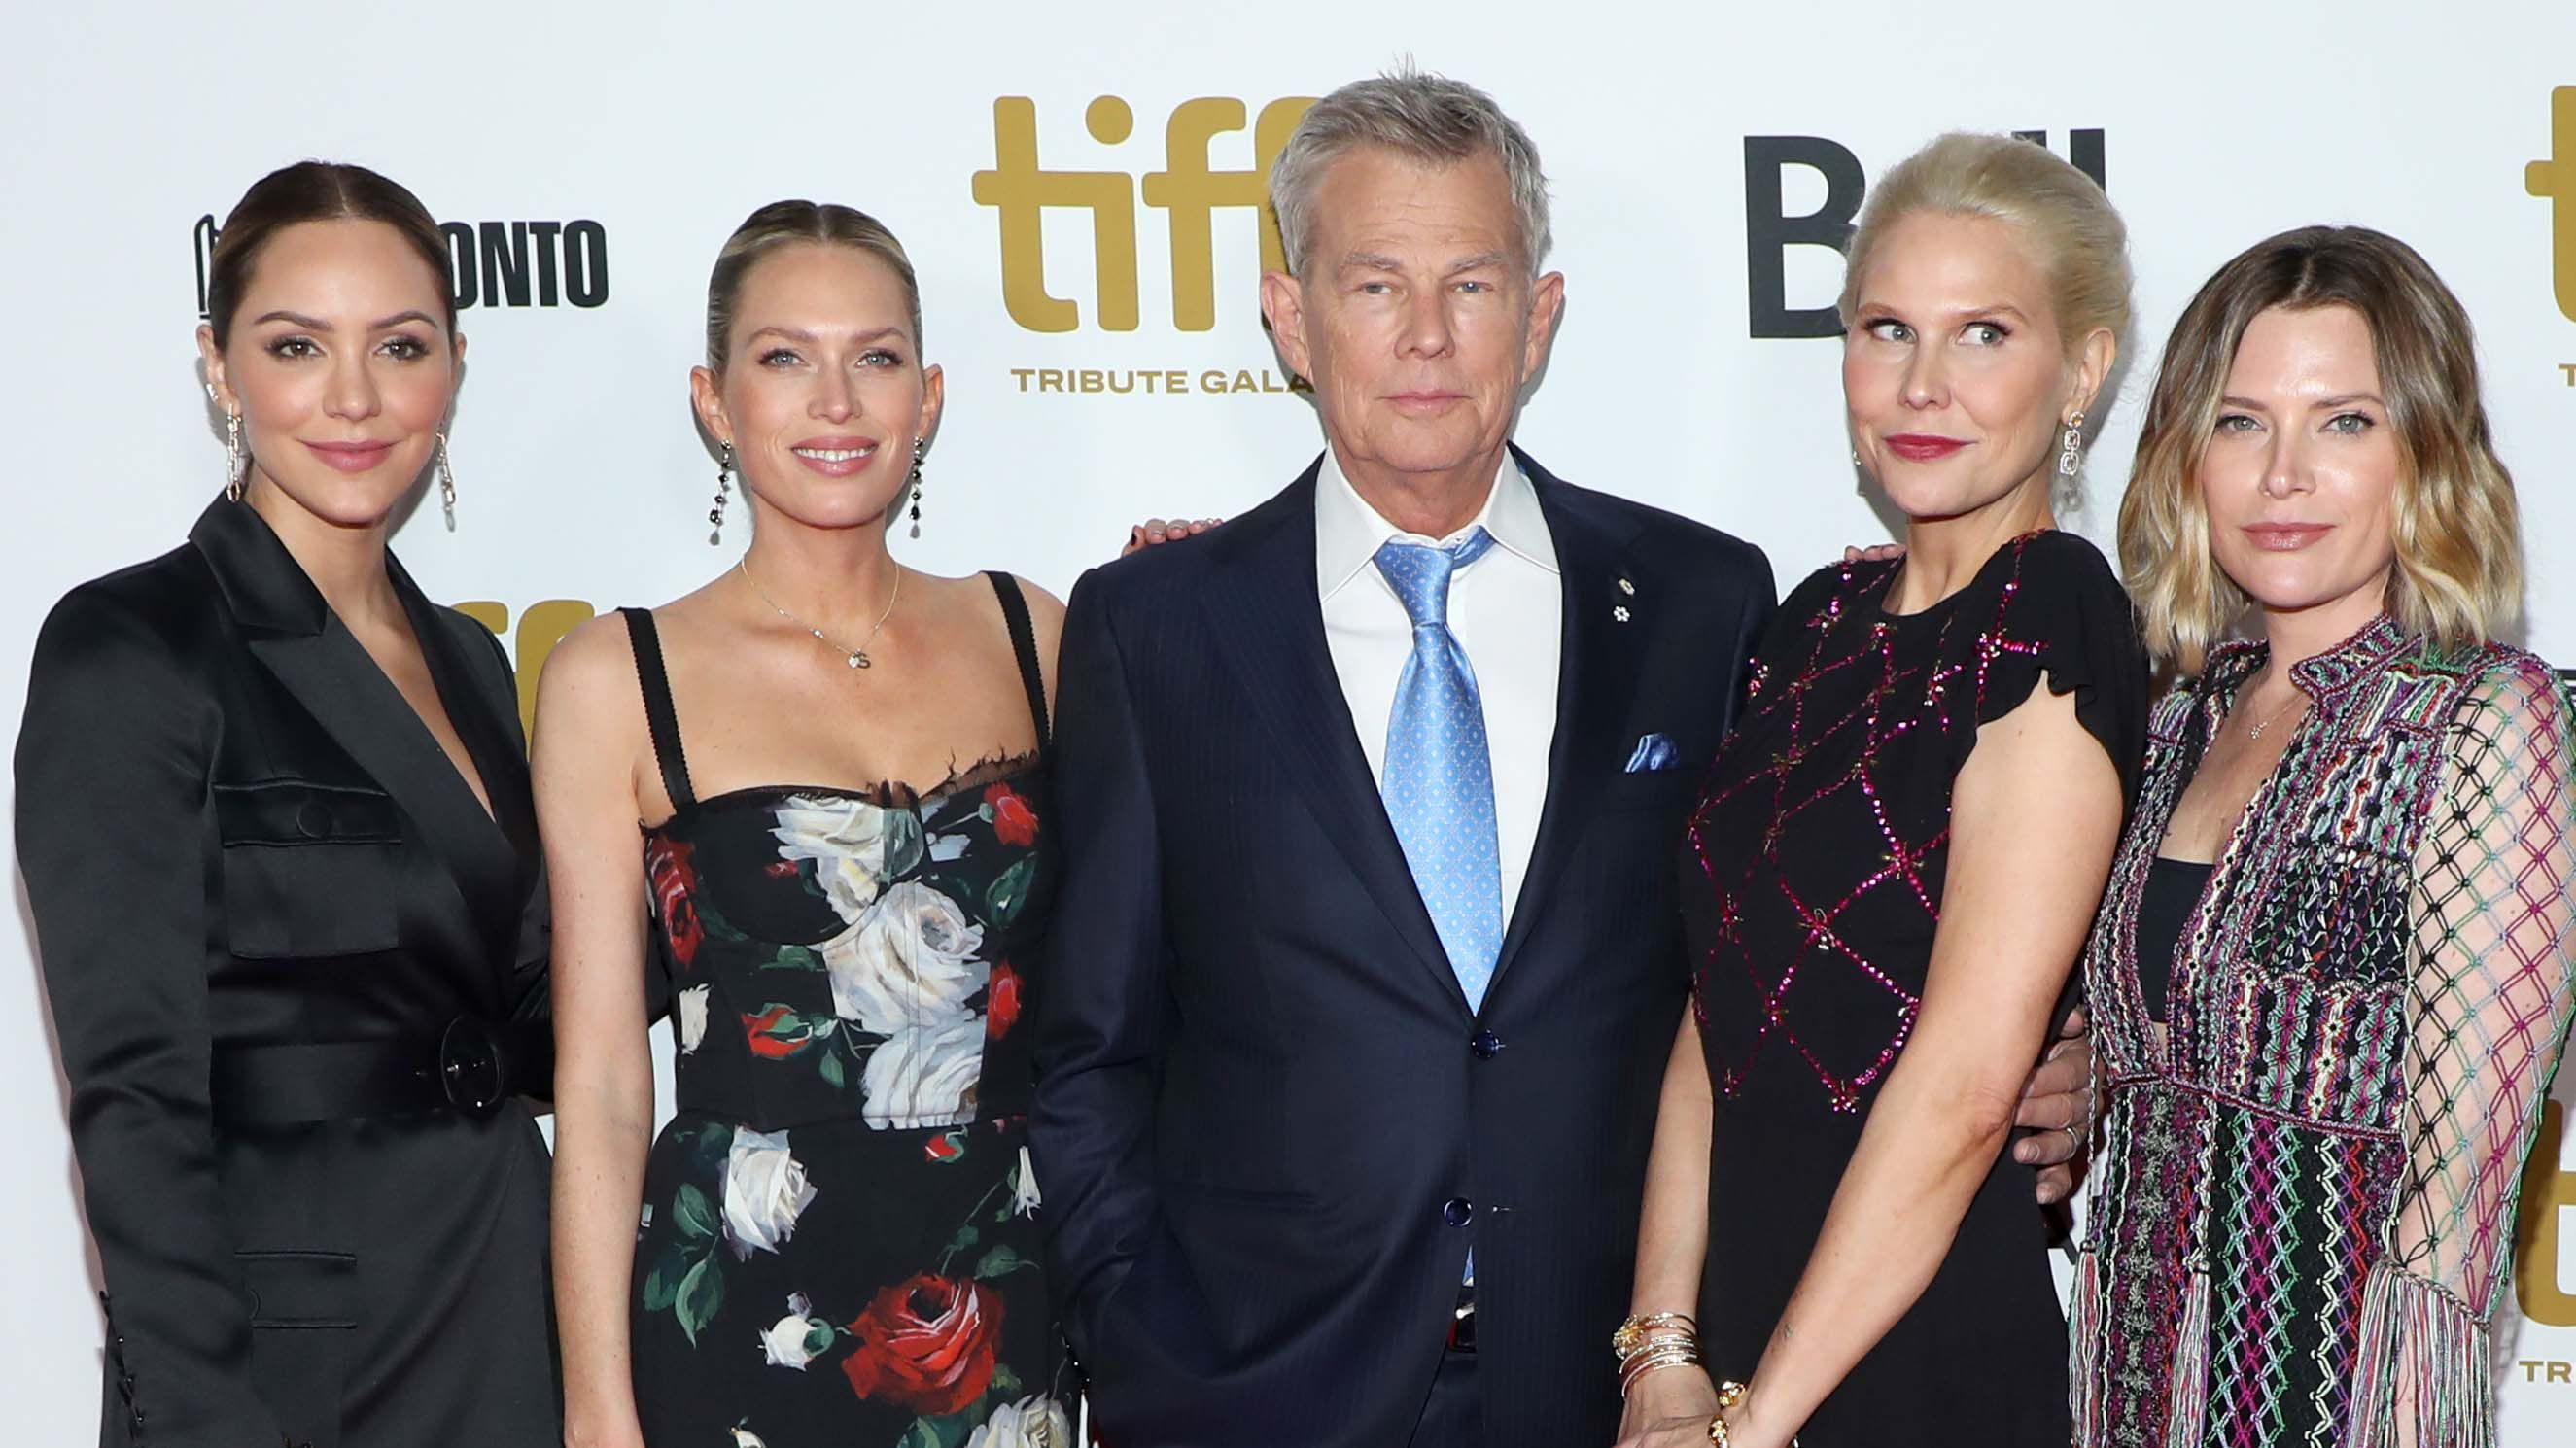 Fox News David Foster S Daughters Reveal Their Only Issue With His Wife Katharine Mcphee In 2020 David Foster Daughters David Foster Wife Gwen Stefani And Blake